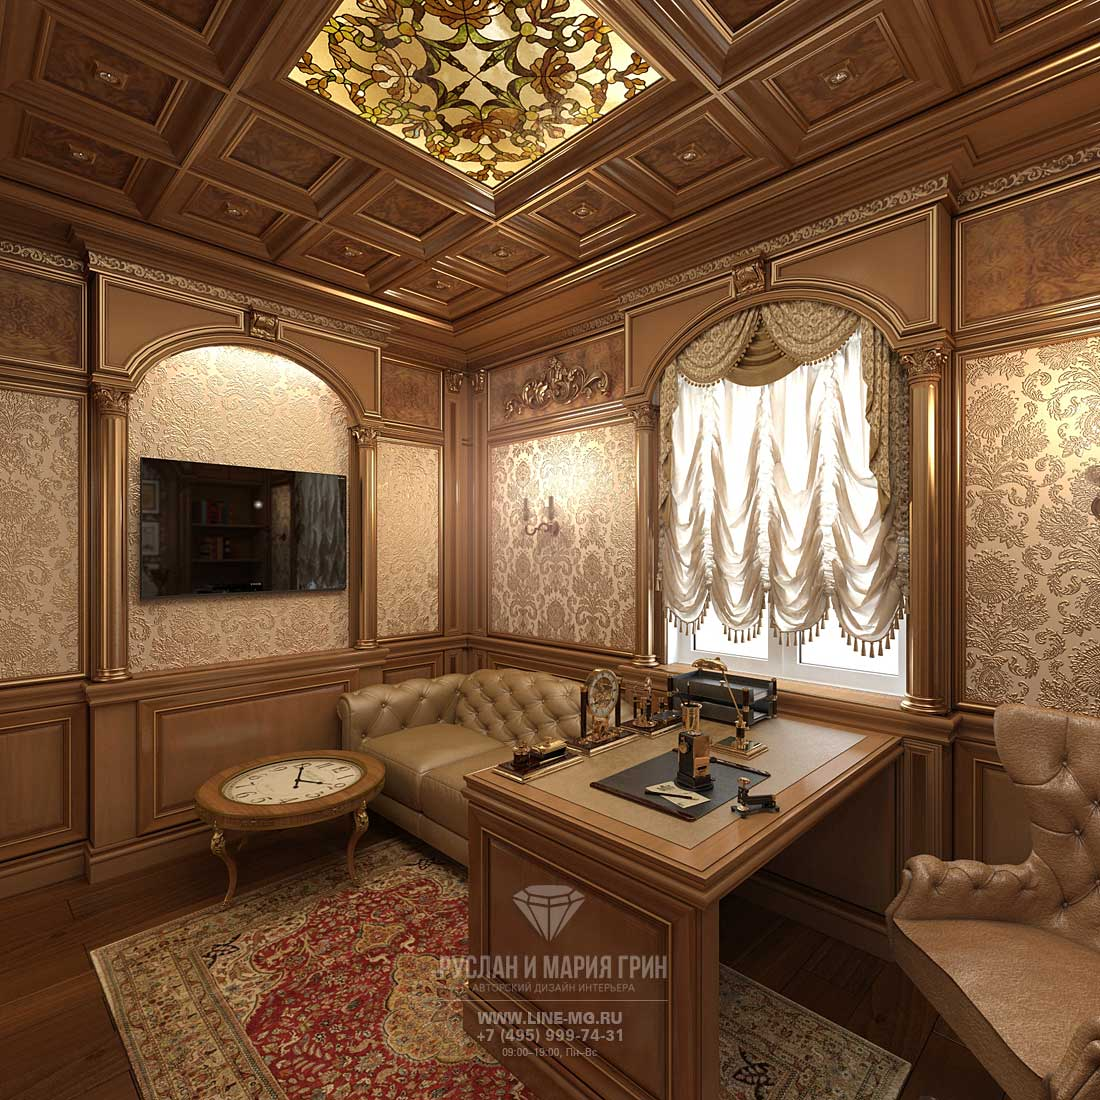 Interior of the the cabinet in the house. Design Ideas